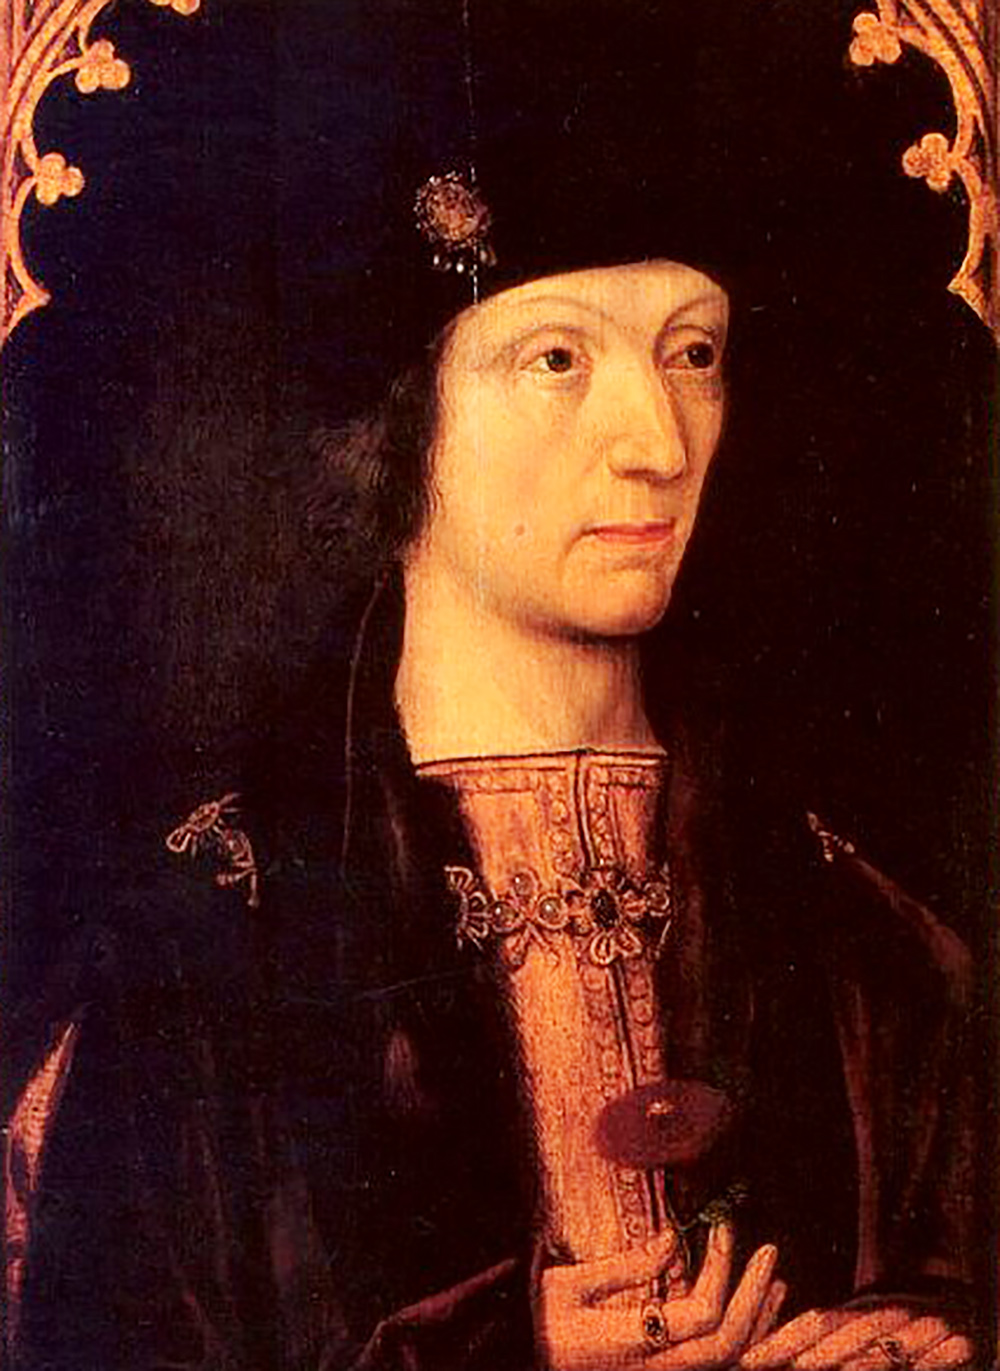 Painting of King Henry VII